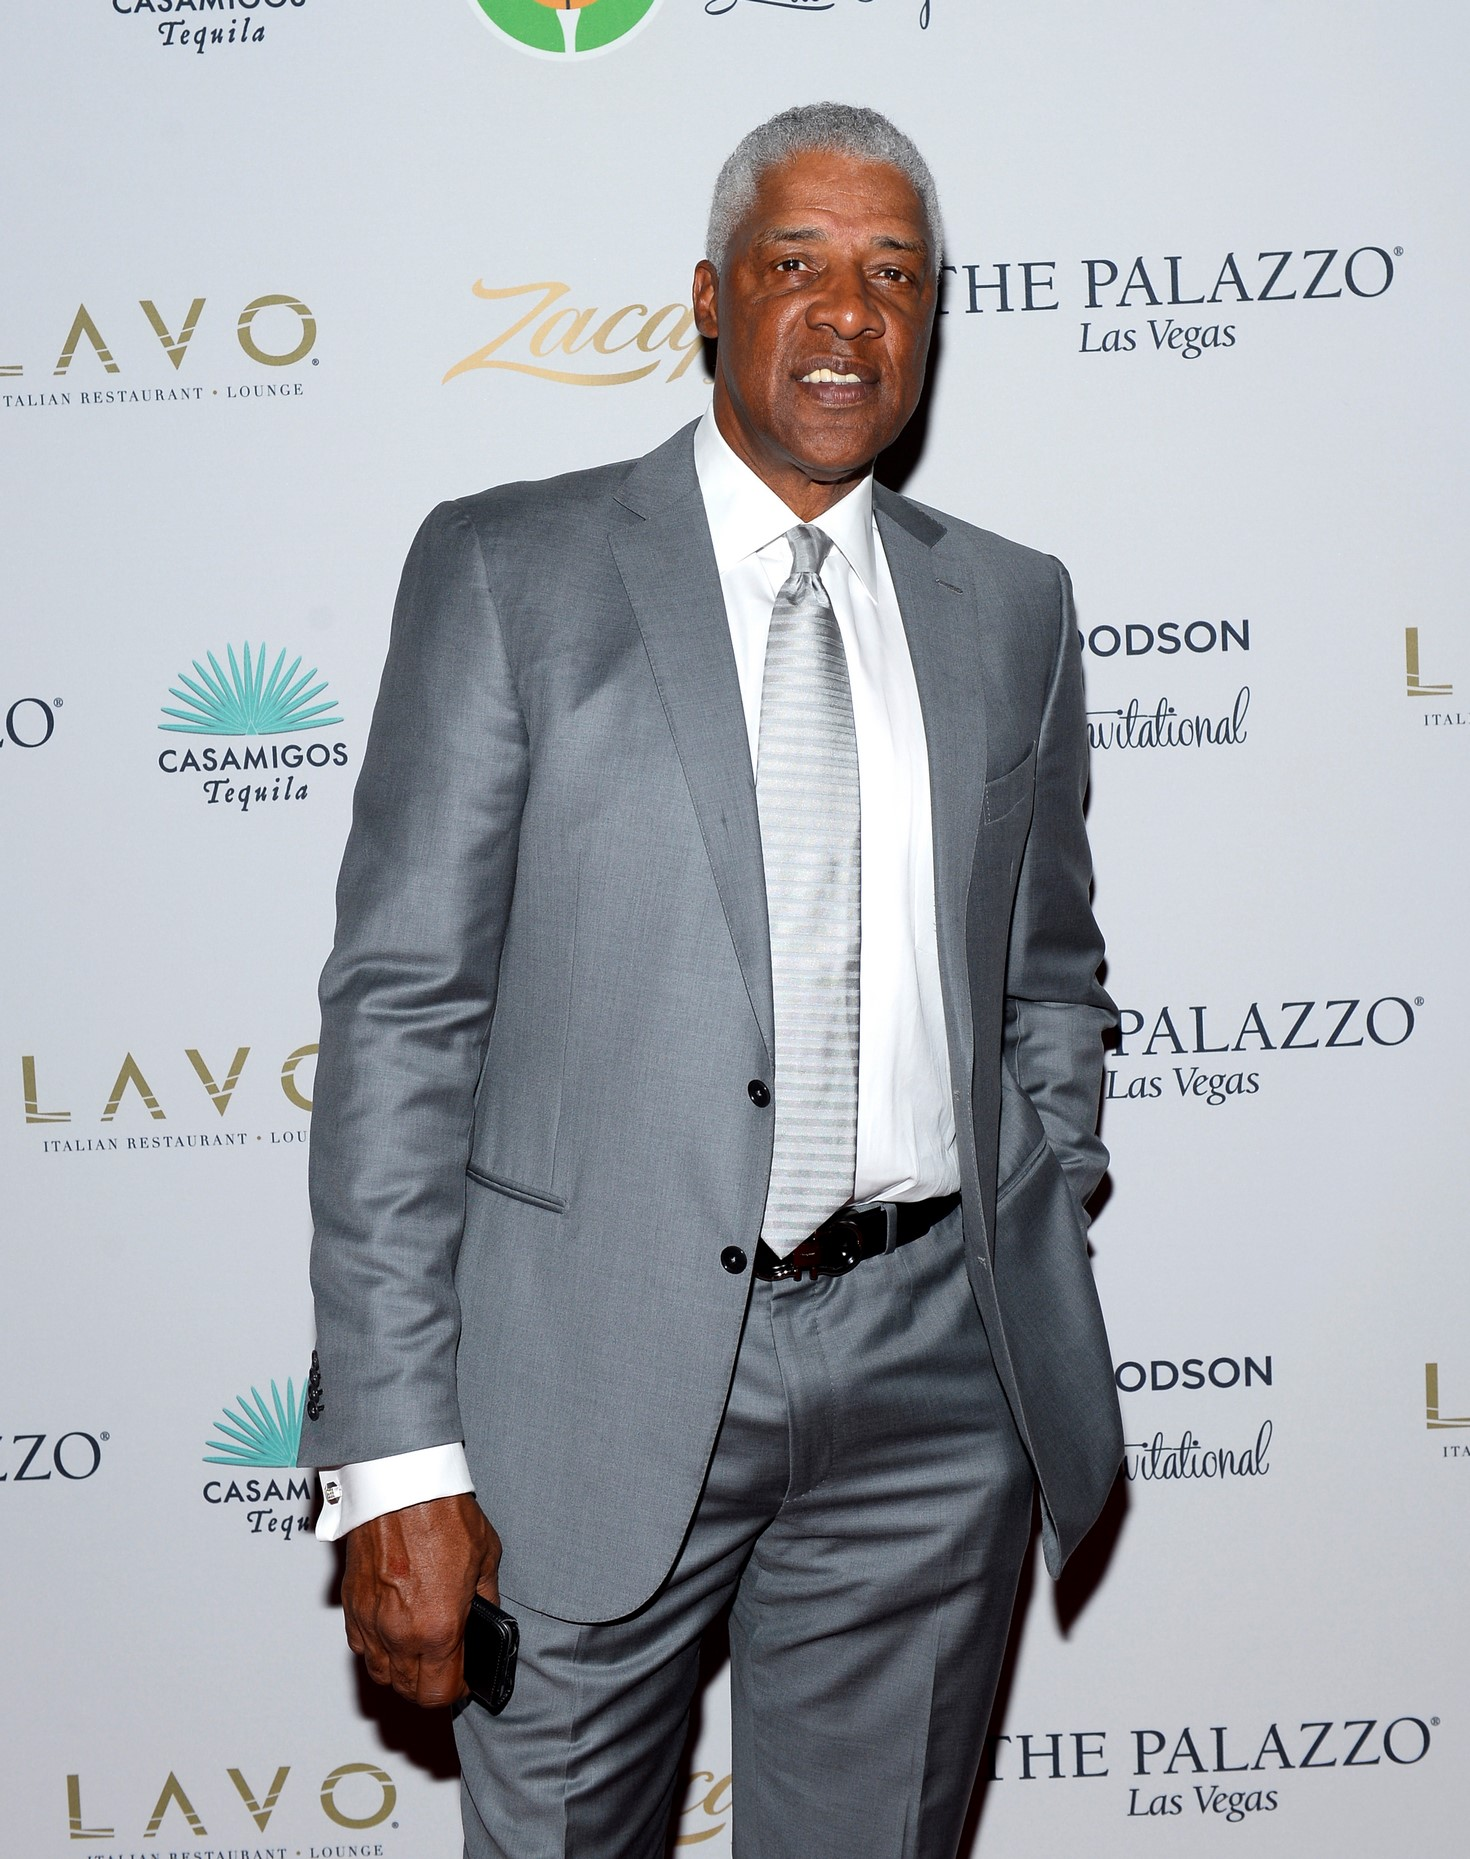 The 2015 Julius Erving Golf Classic Hosted by Dr J to Be Held